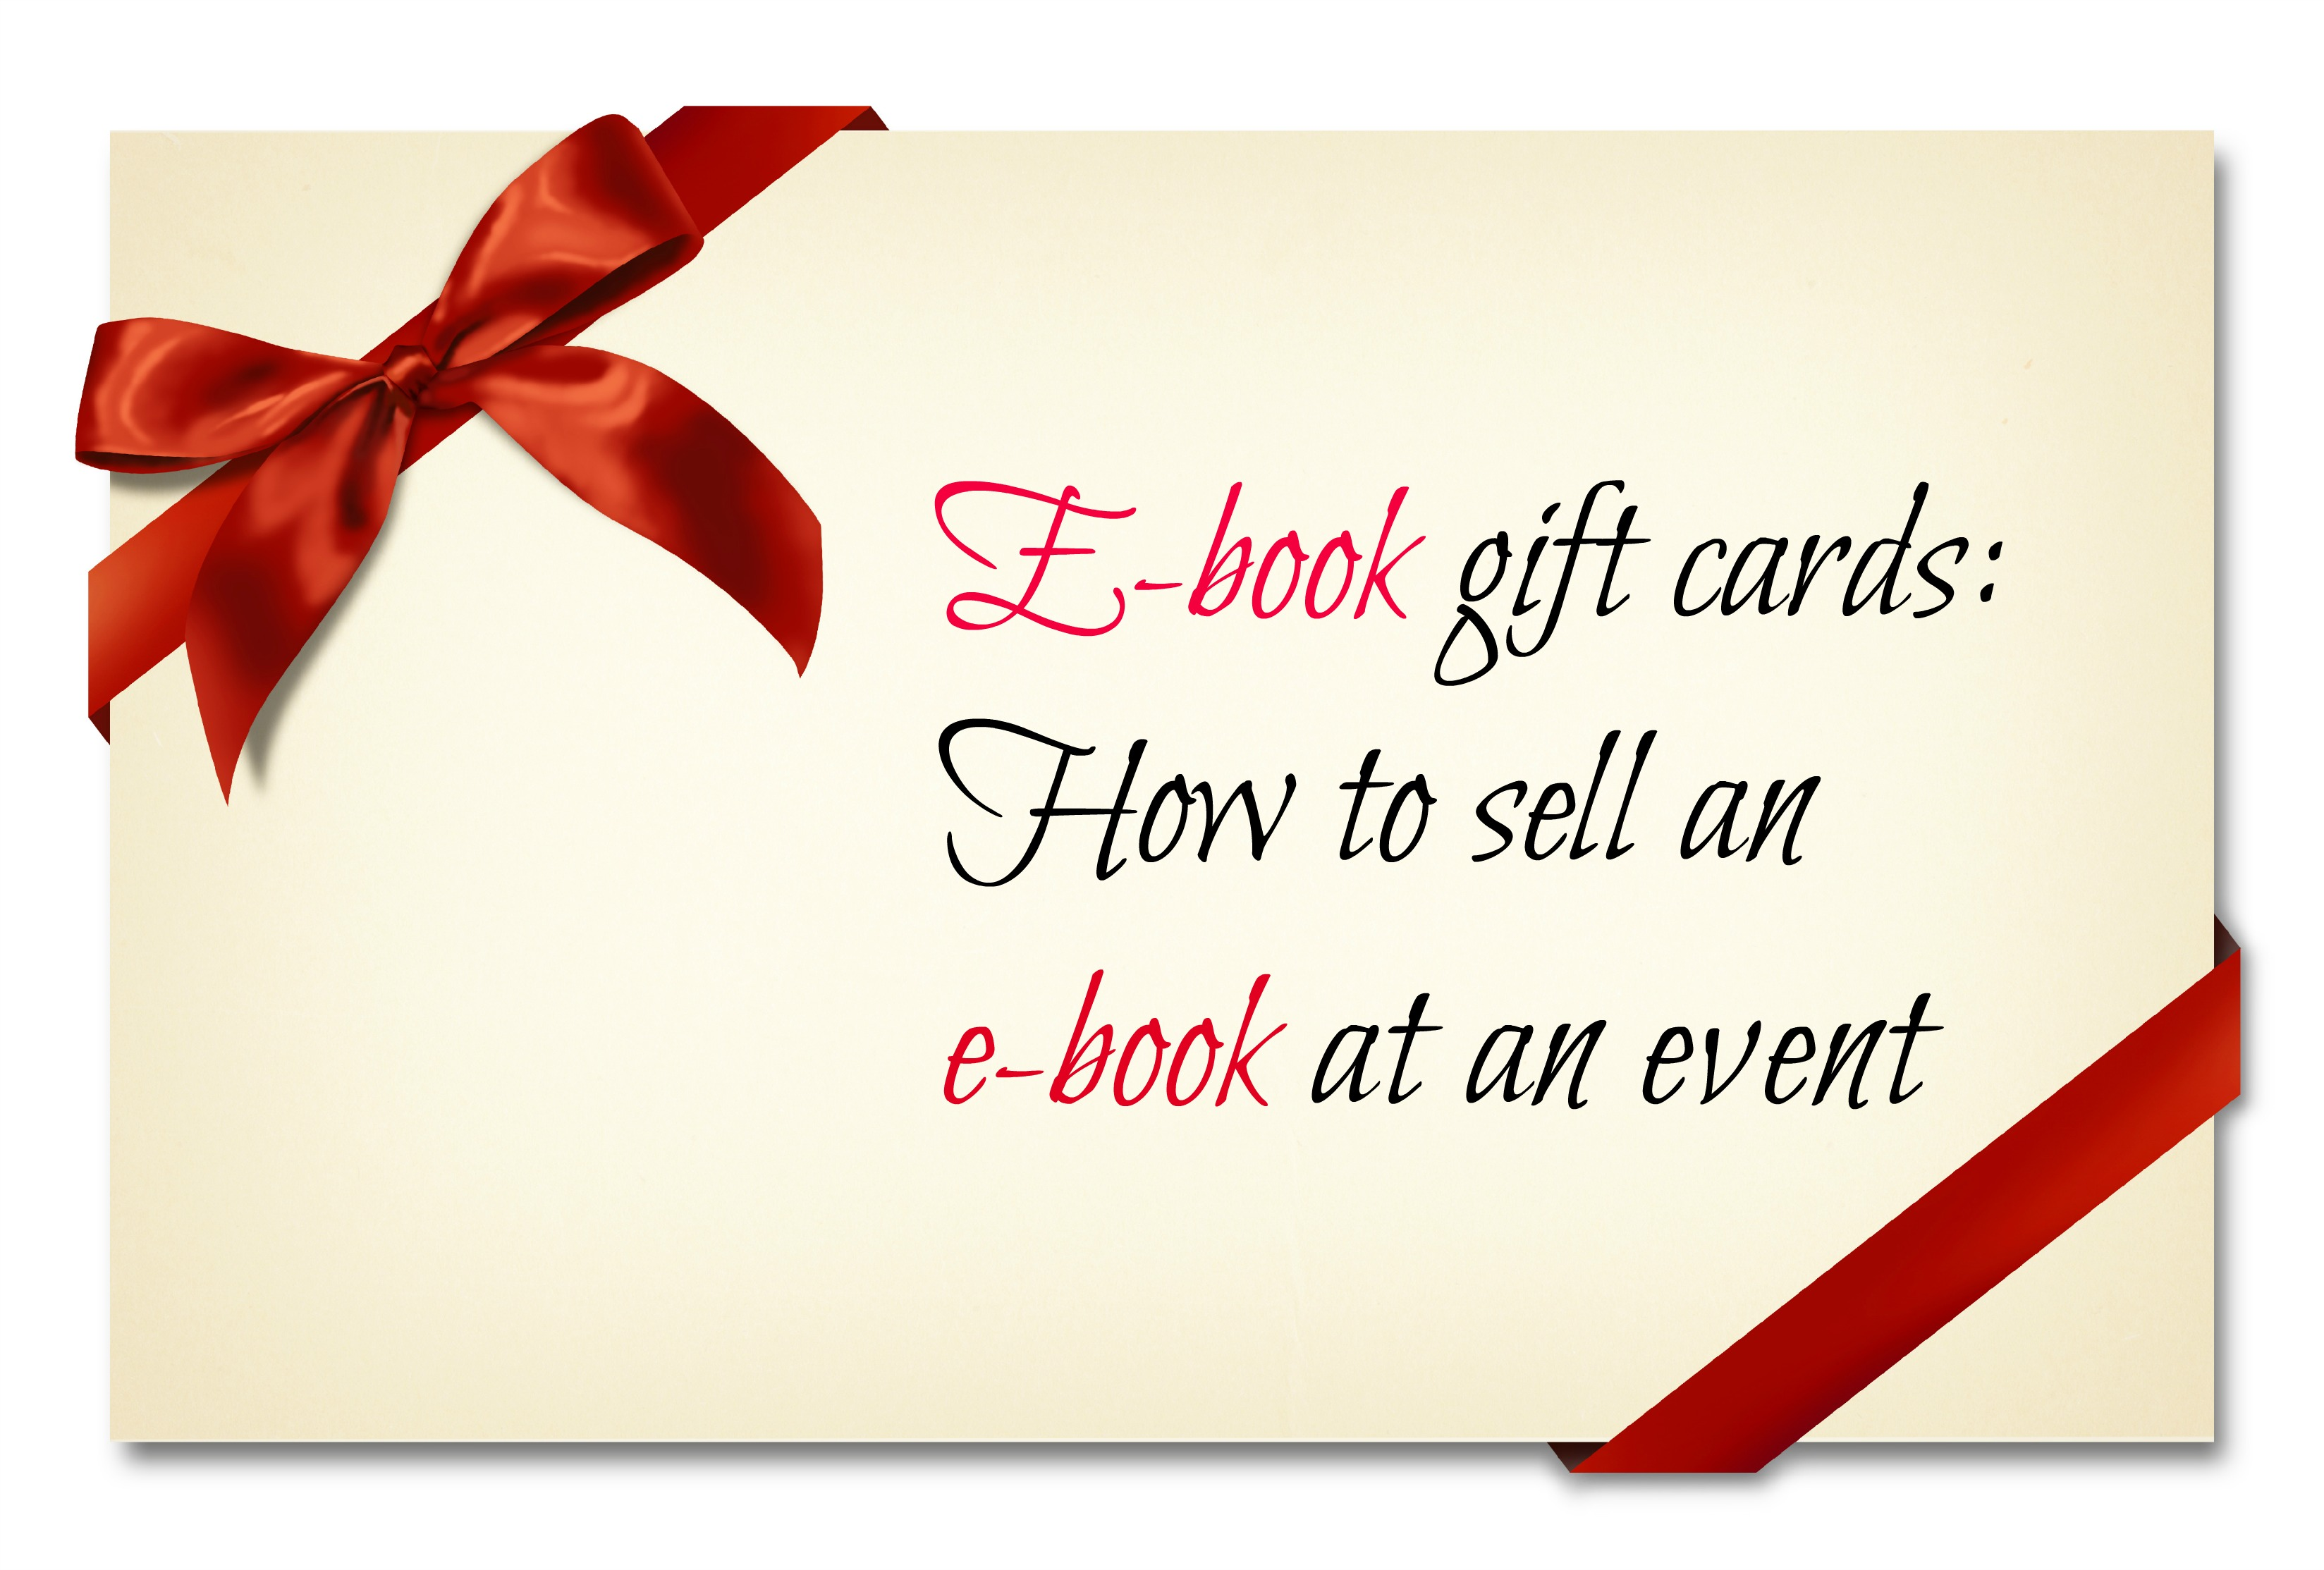 E book gift cards how to sell an e book at an event build book buzz e book gift cards kristyandbryce Gallery